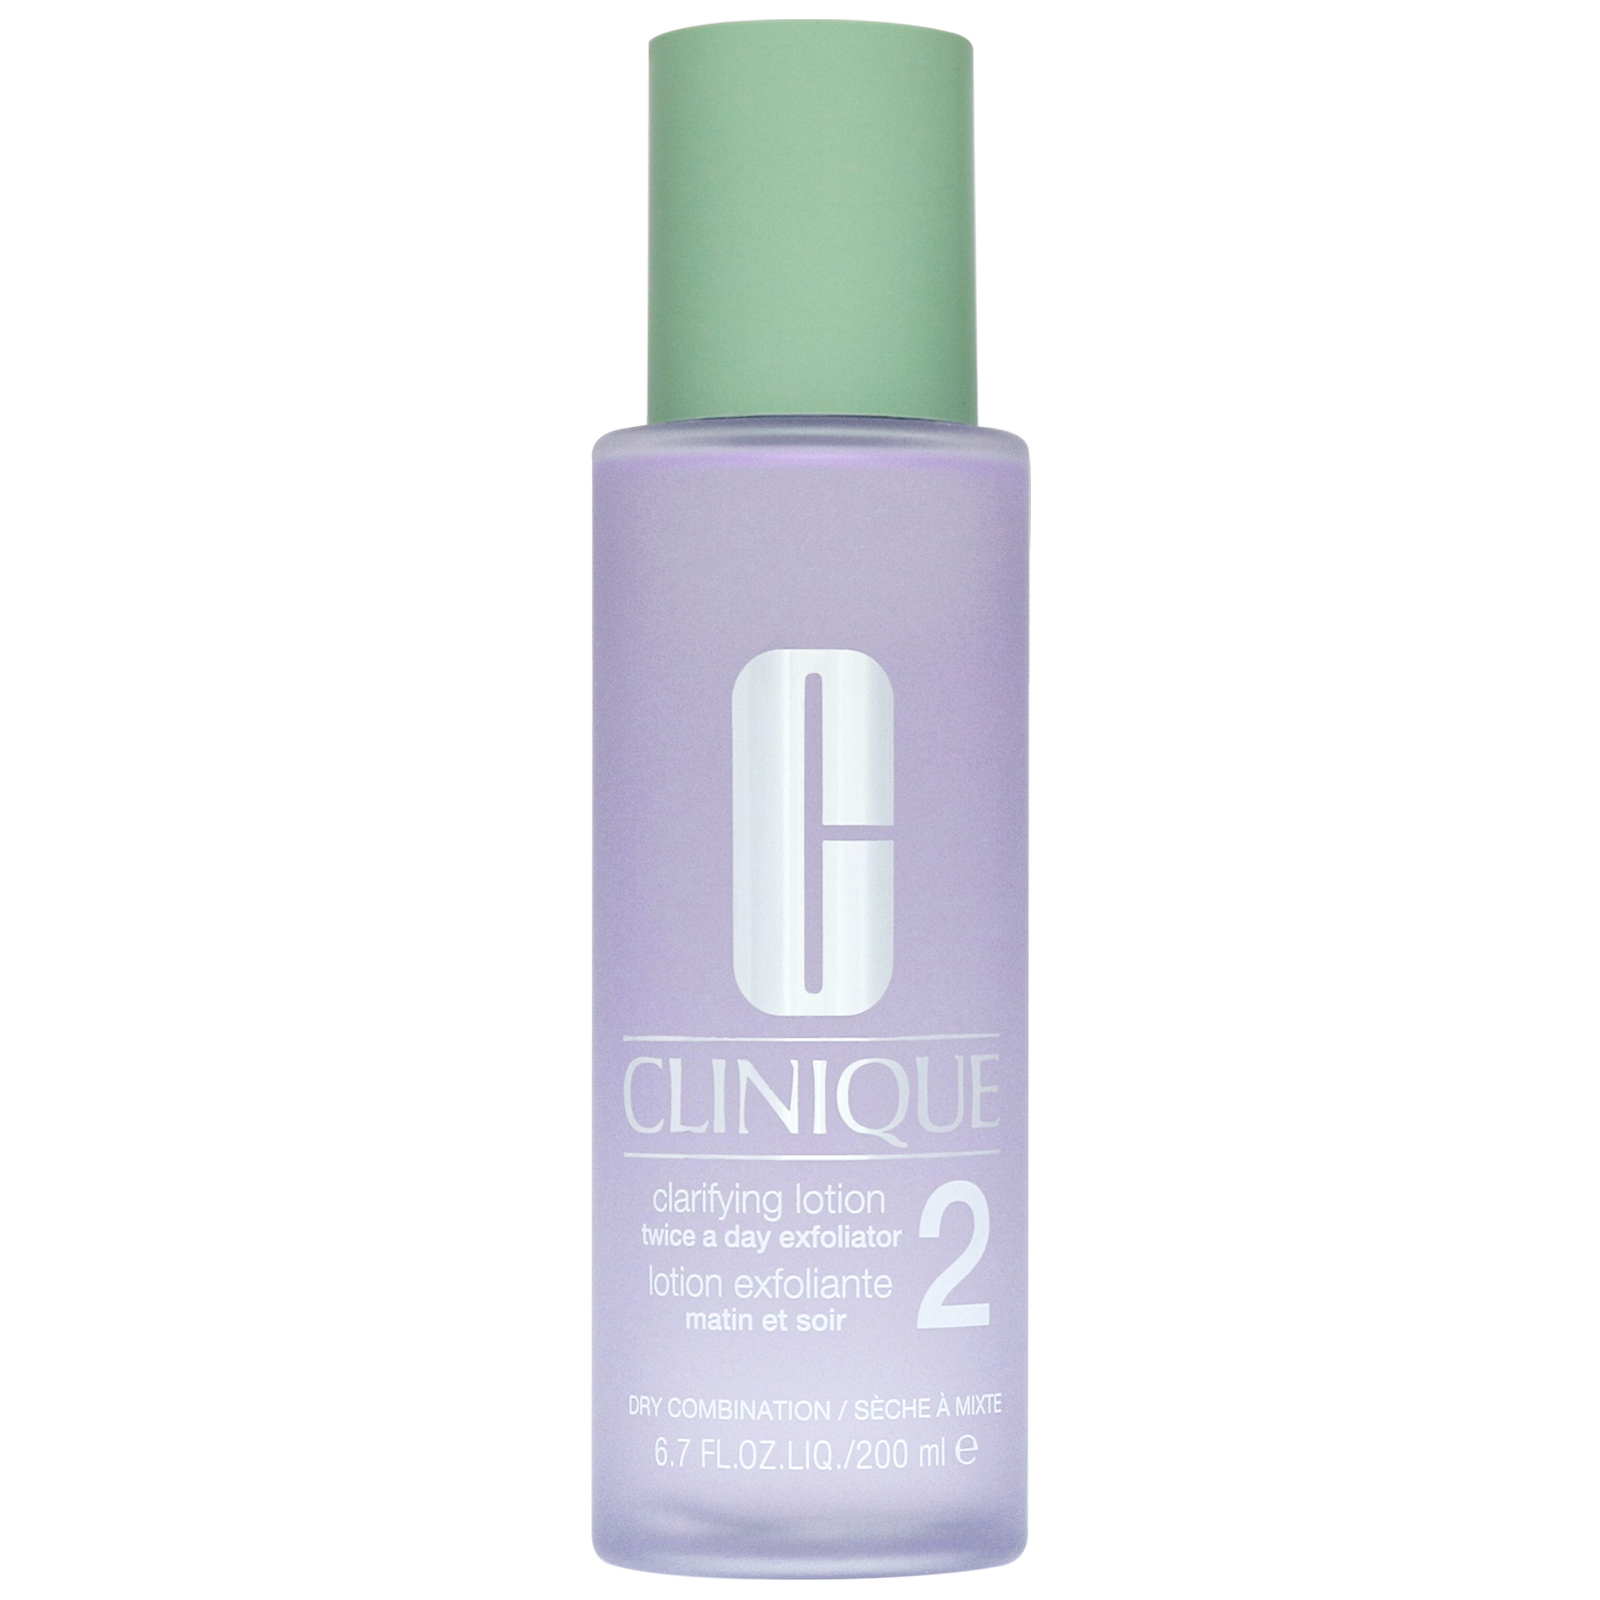 Clinique Cleansers & Makeup Removers Clarifying Lotion Twice A Day Exfoliator 2 for Dry and Combination Skin 200ml / 6.7 fl.oz.